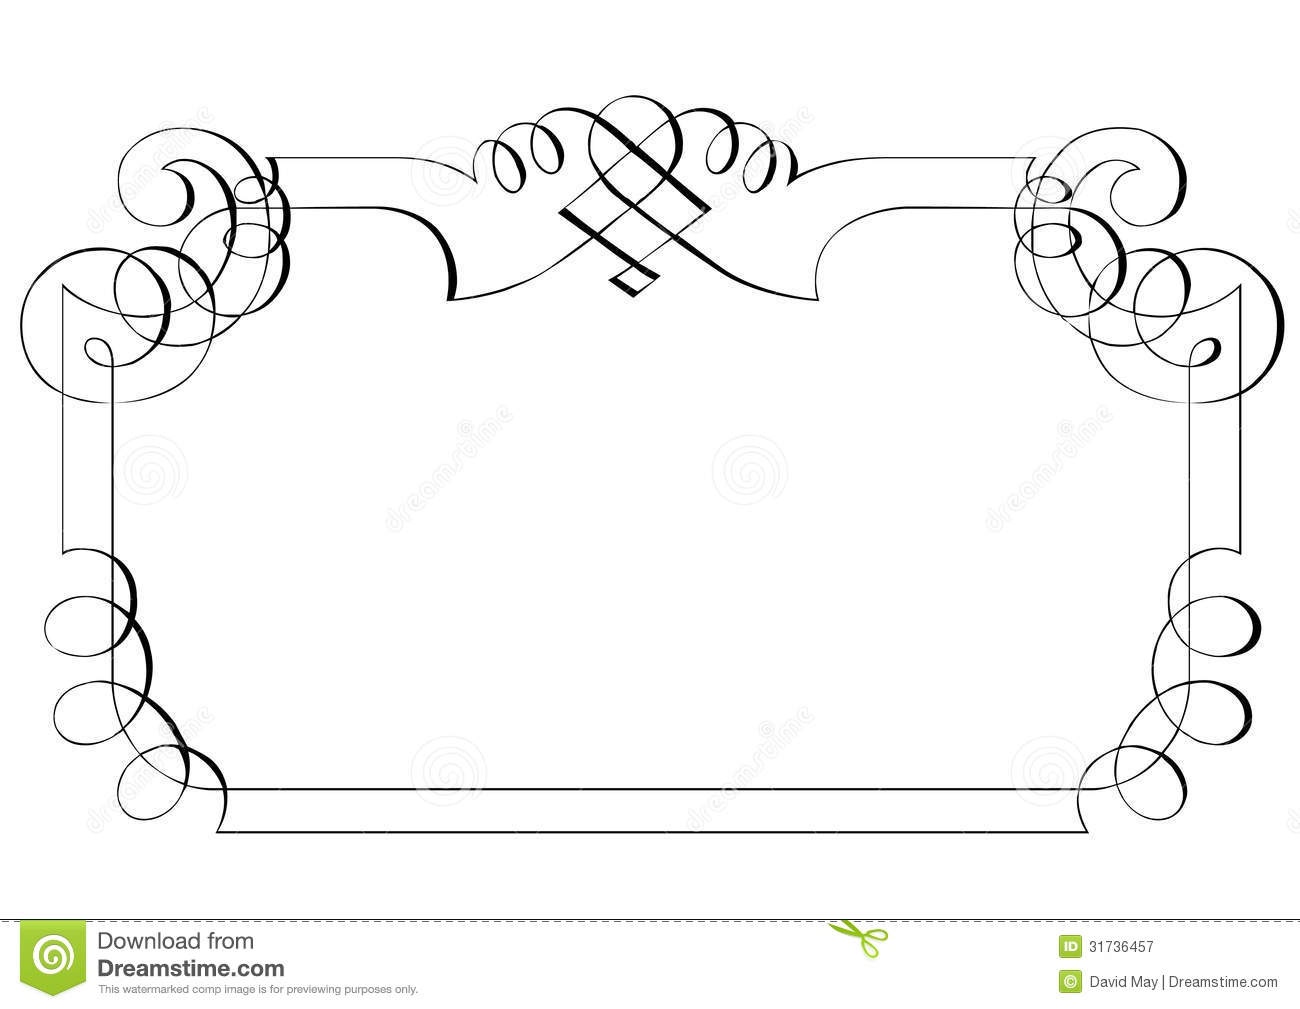 Fancy Border Vector At Getdrawings Com Free For Personal Use Fancy